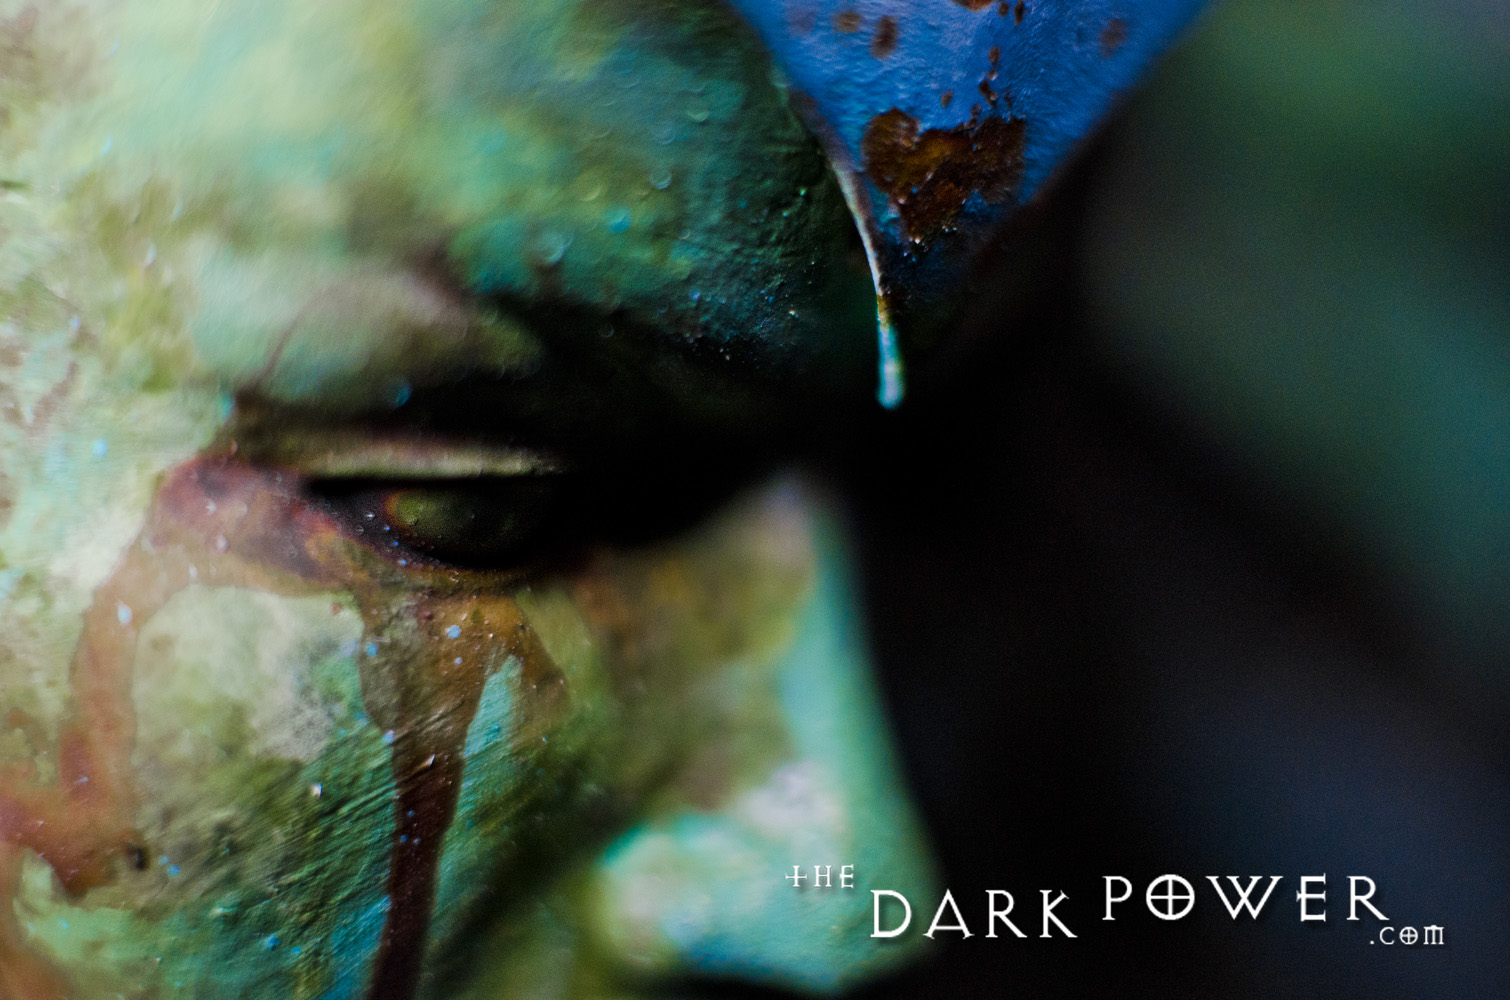 "the-dark-power ""The Lady of Pain"", dettaglio 2 - by The Dark Power (Joe) thedarkpower.com (2018-11) © dell'autore, tutti i diritti riservati"